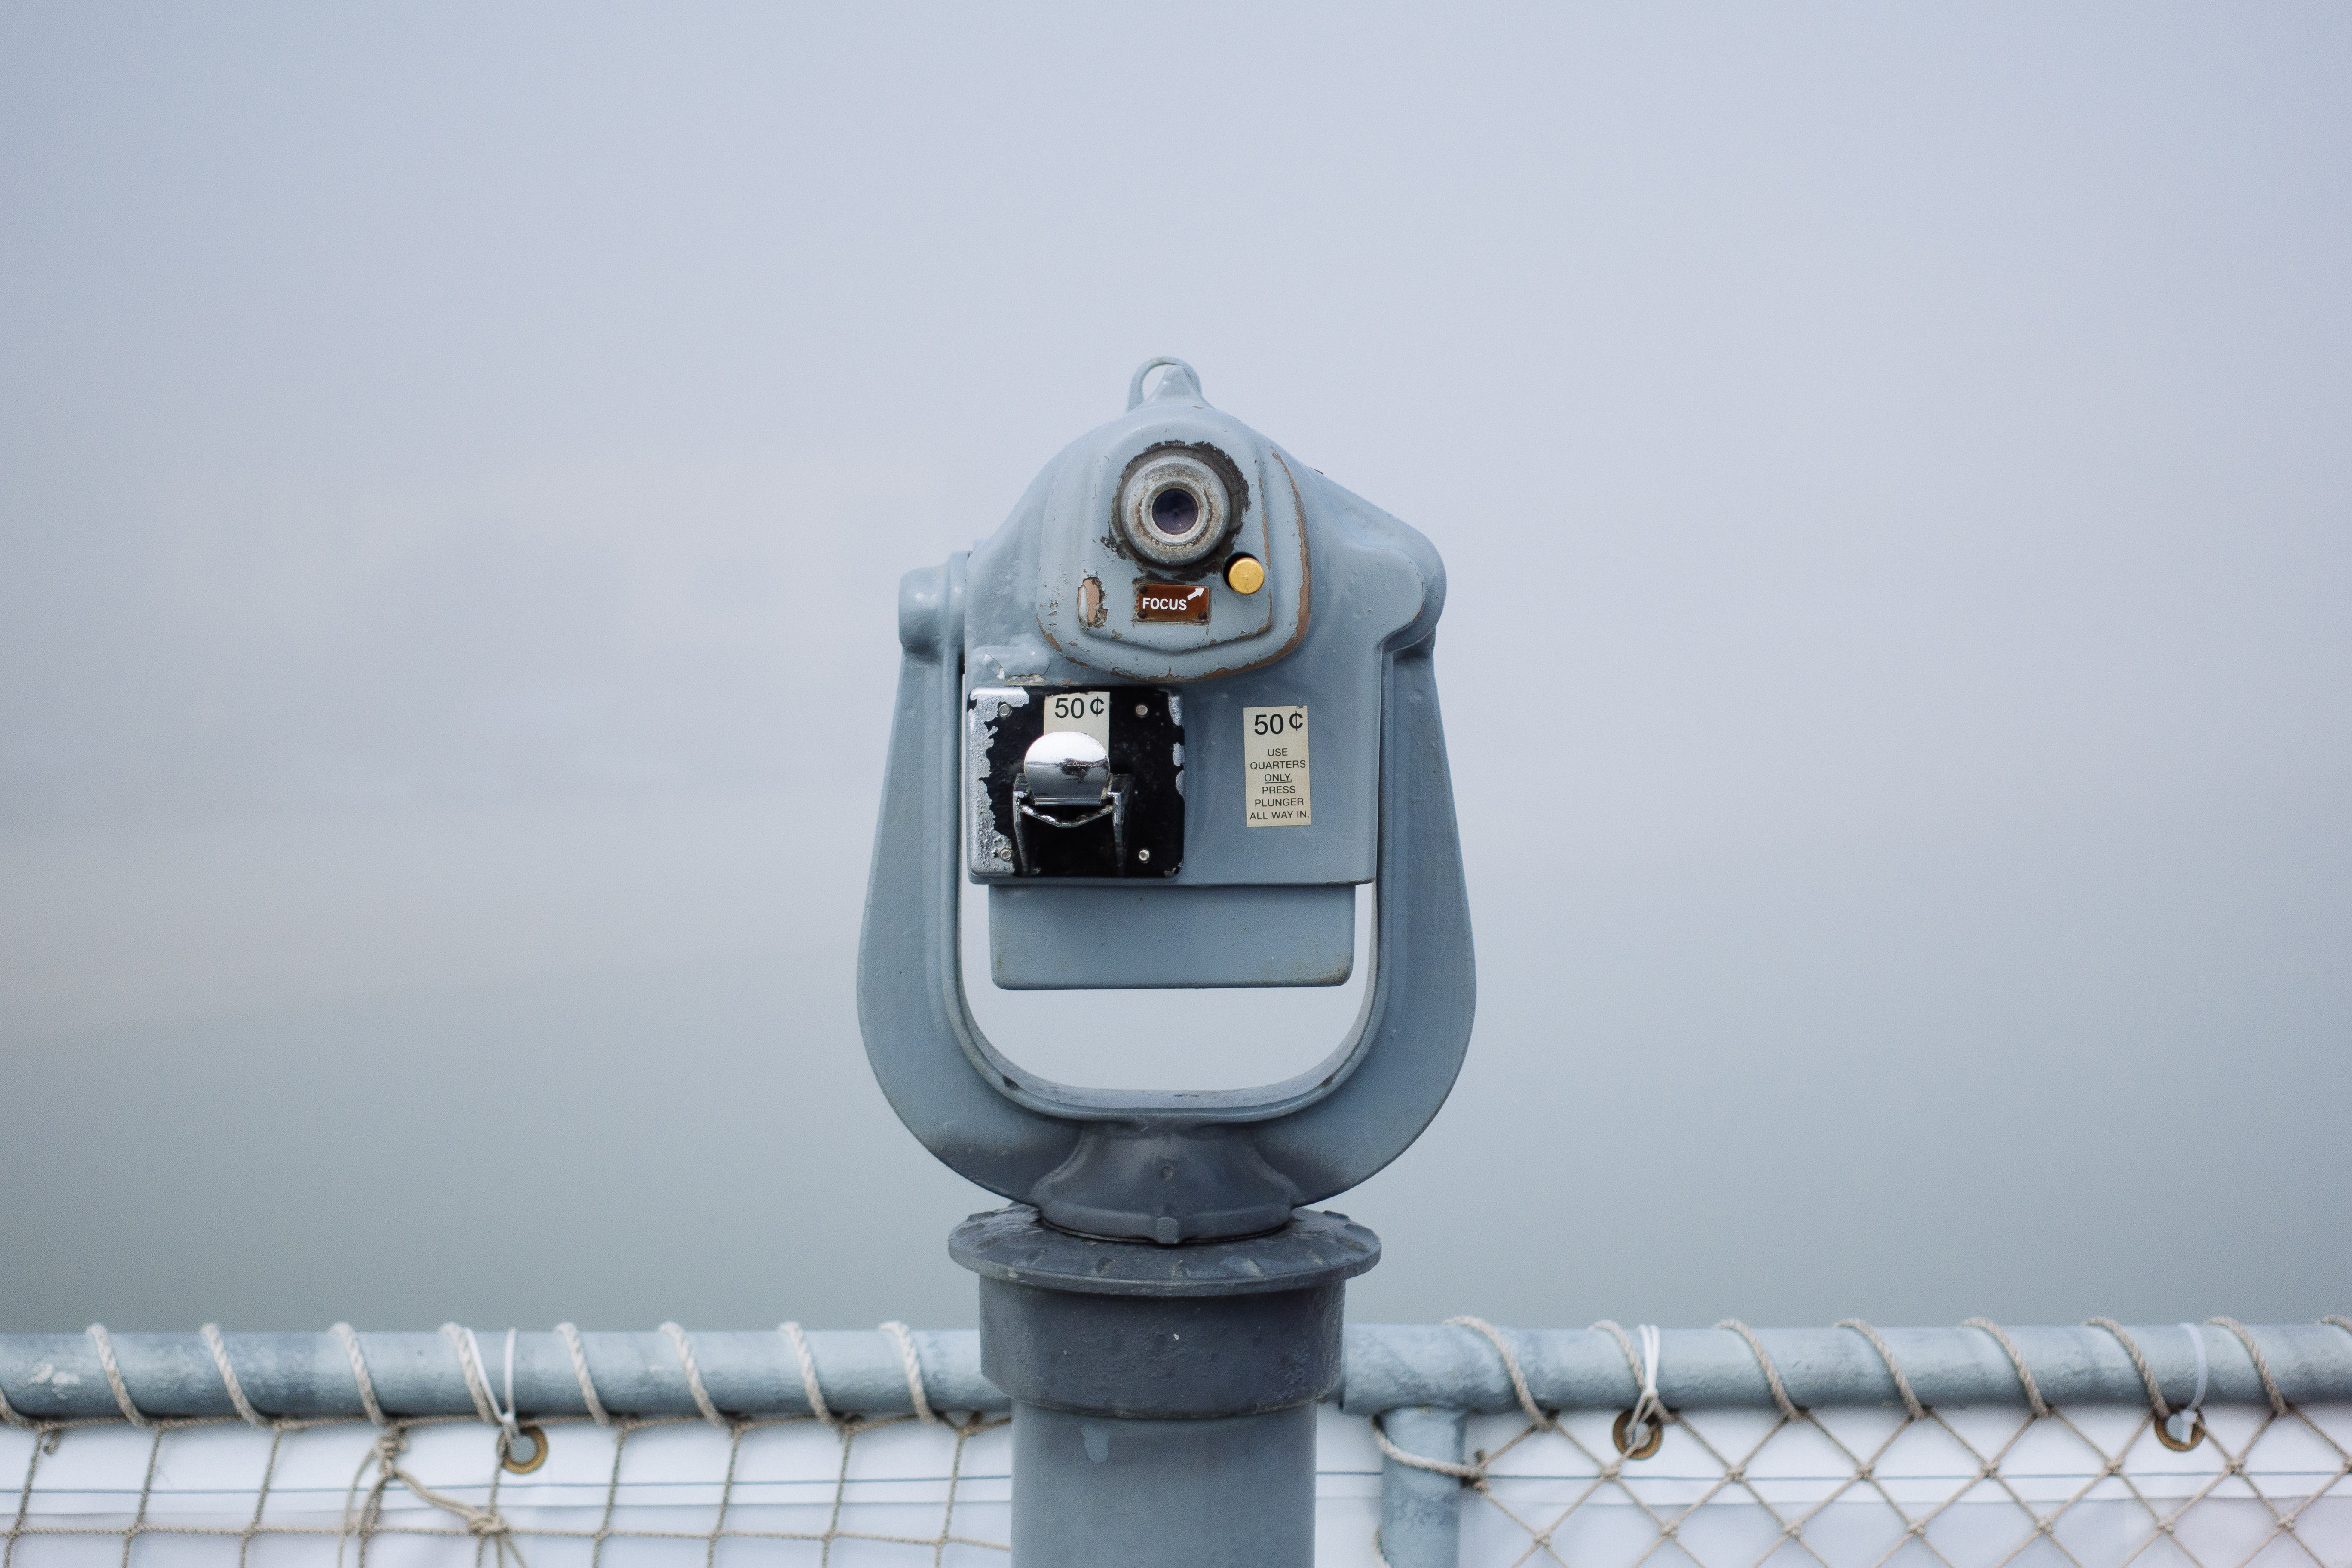 A tower viewer at the edge of an observation deck on a misty day